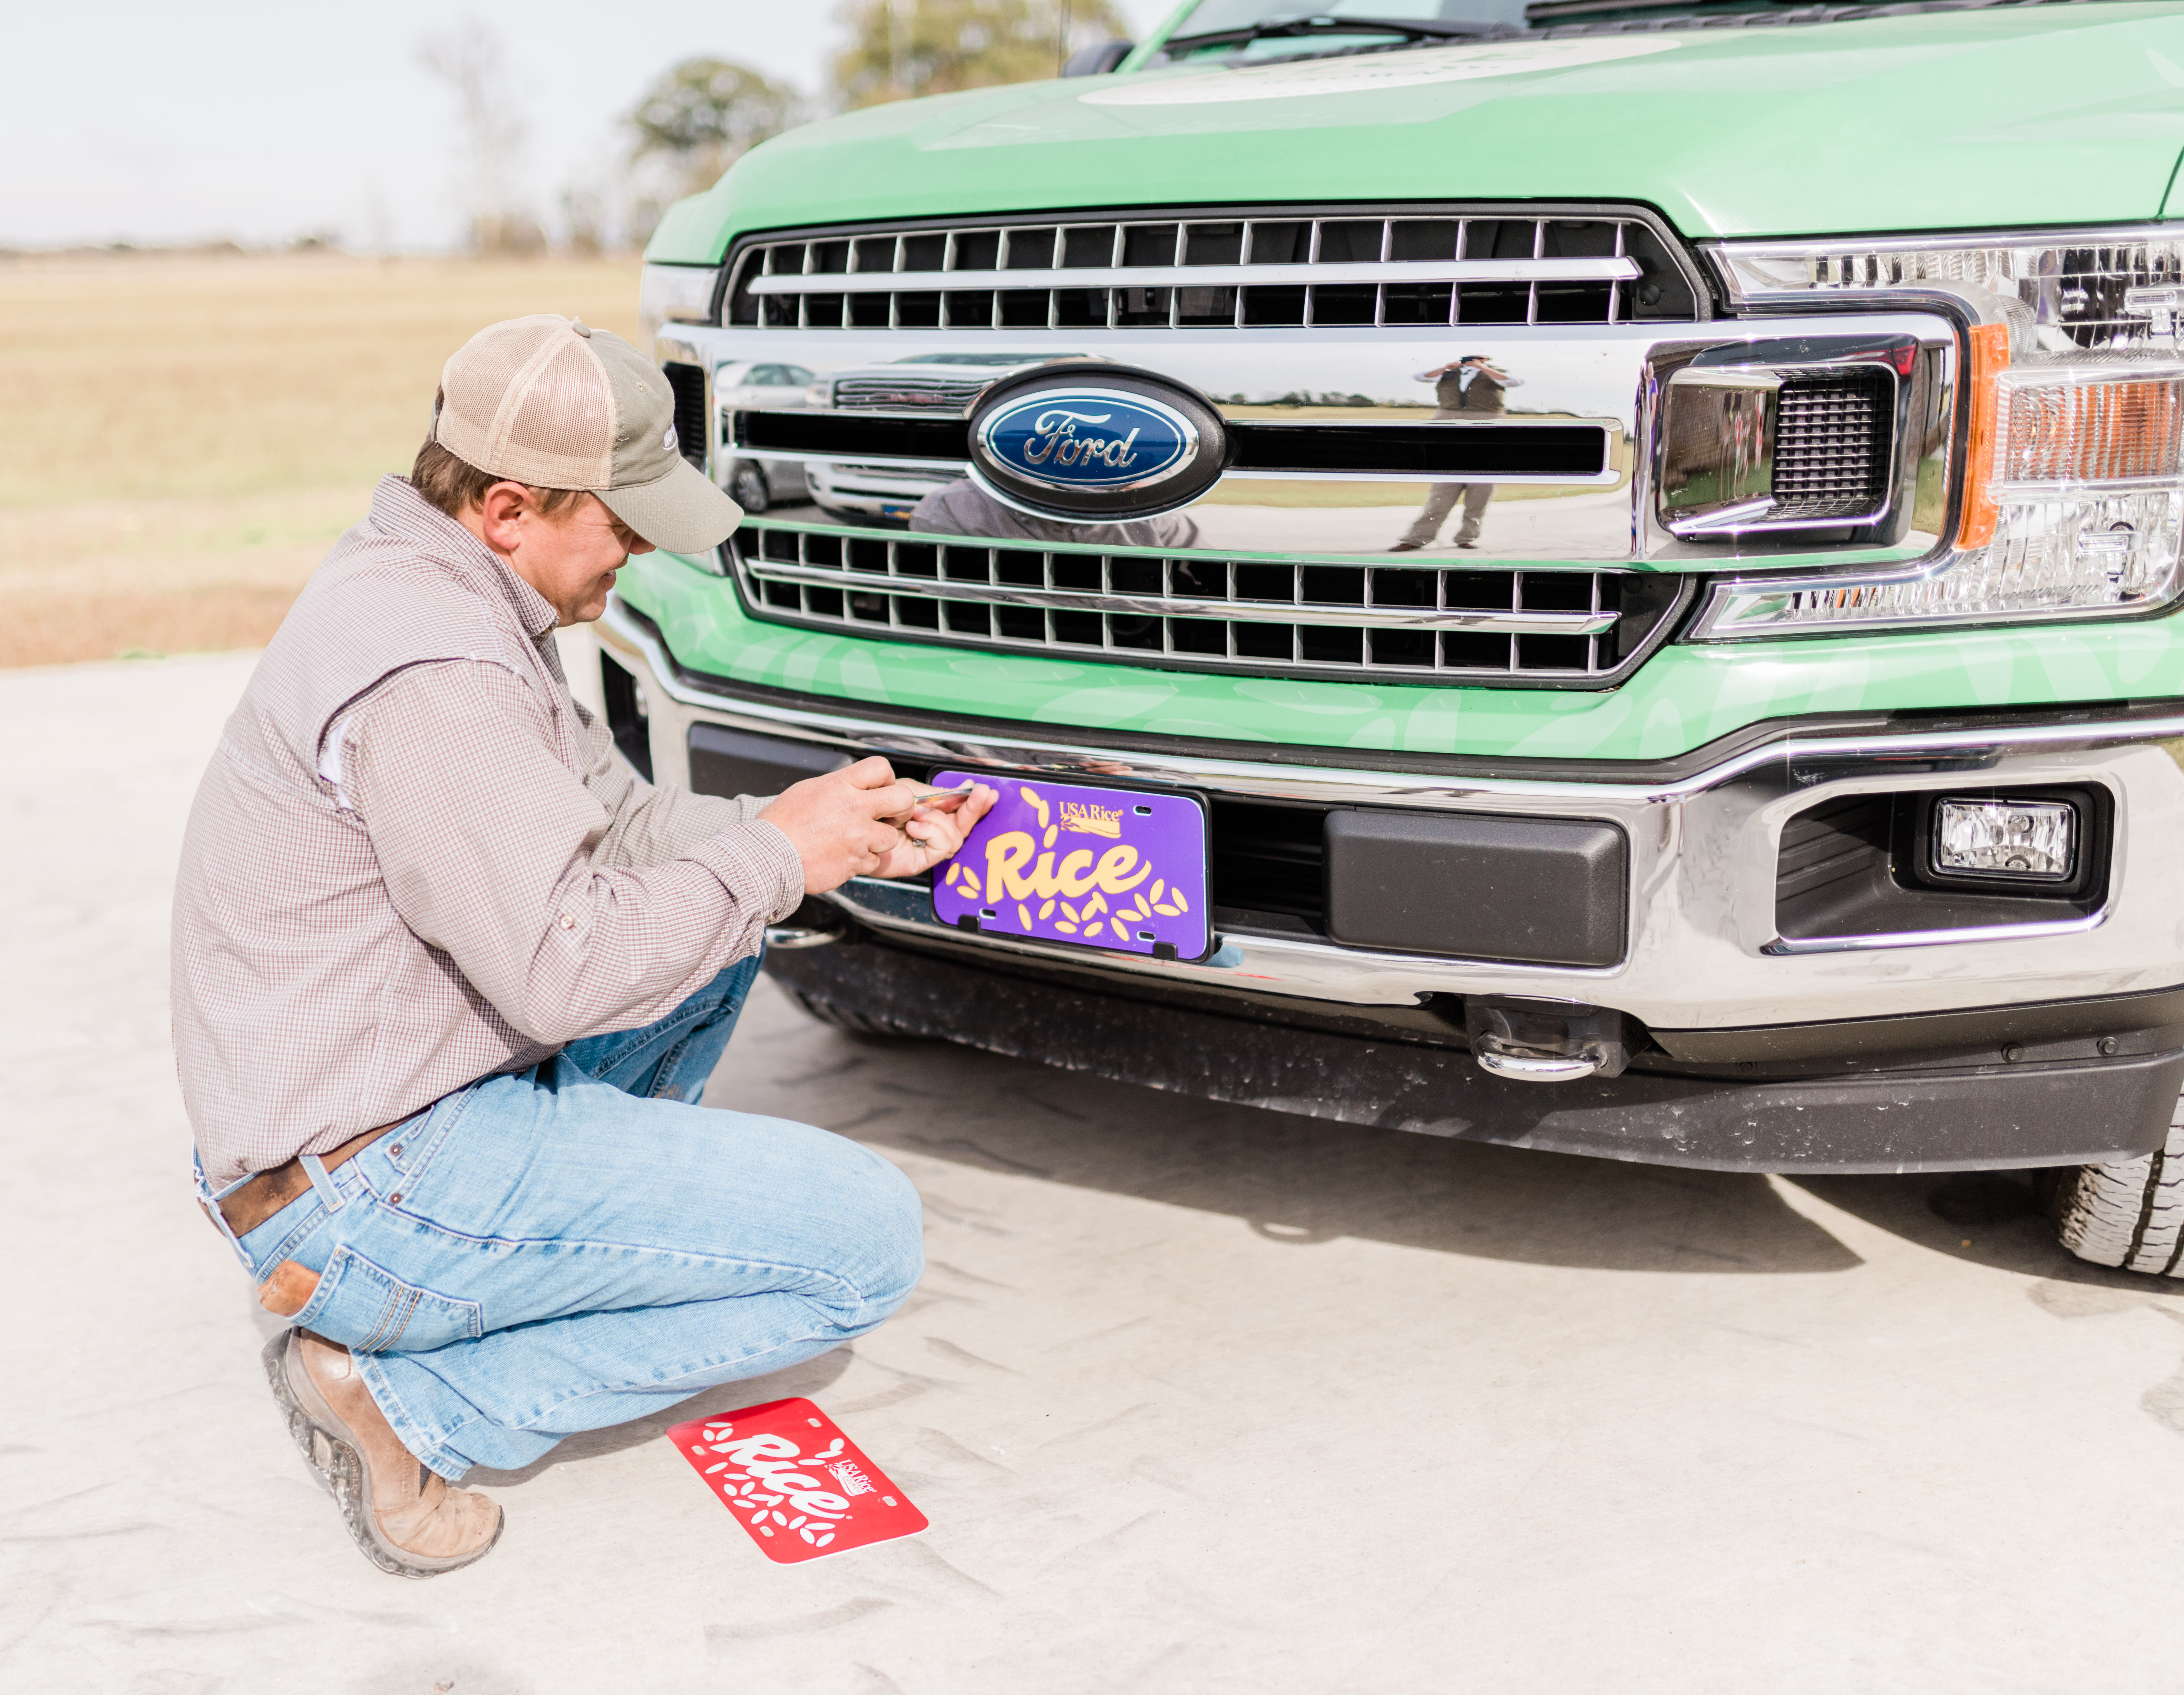 Man kneeling in front of Rice Truck, changing license plate from red to purple